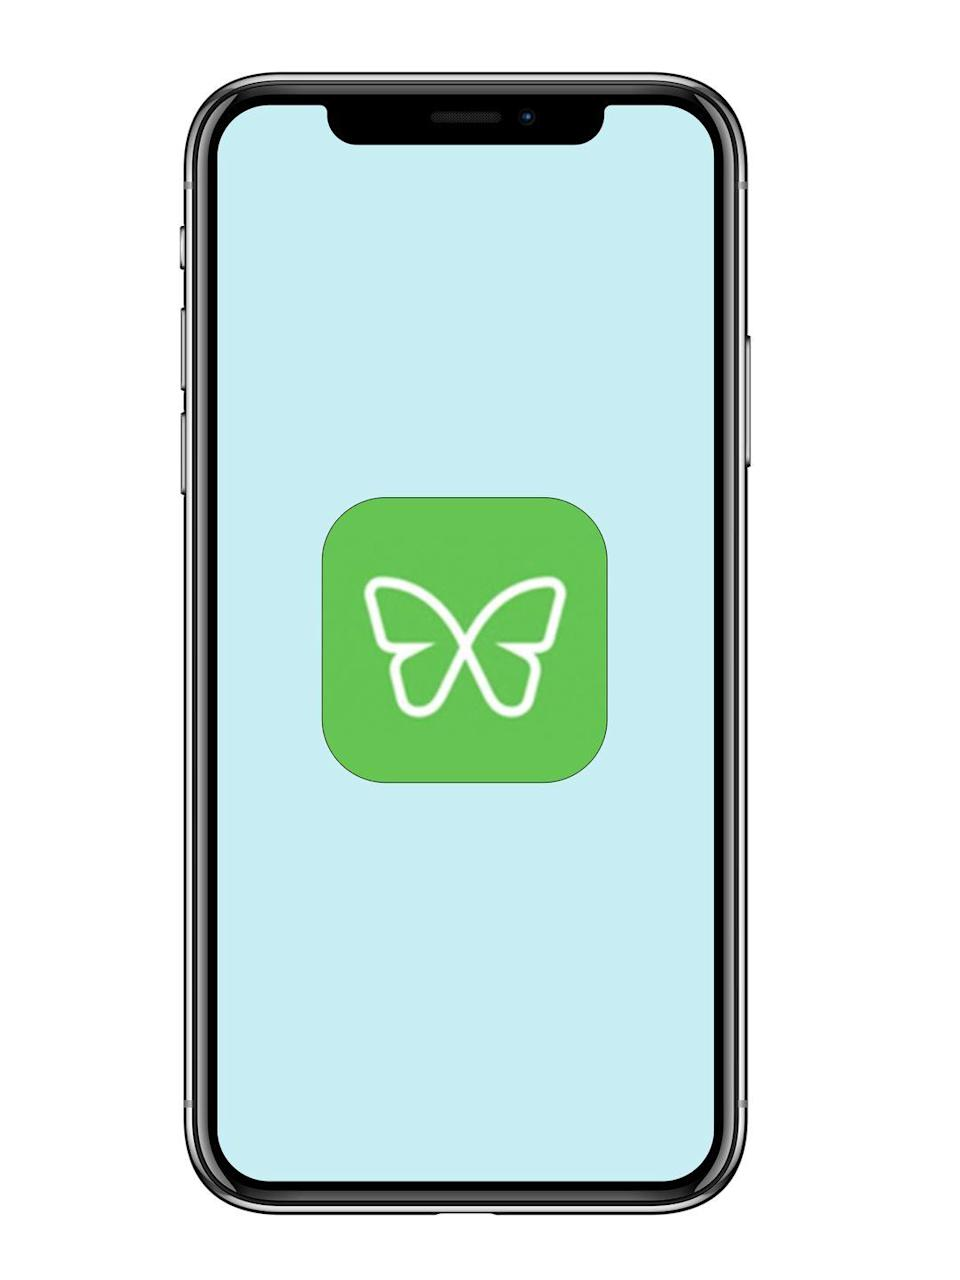 "<p>If you're a multi-device user, this service is for you — it syncs your app limitation rules across your phones, computers, and tablets. You can use a designated feature to group apps by usage (like putting all work distractors into a ""Games"" list) and block these apps for <a href=""https://www.goodhousekeeping.com/life/career/a31436581/working-from-home-tips/"" rel=""nofollow noopener"" target=""_blank"" data-ylk=""slk:custom time periods throughout the day"" class=""link rapid-noclick-resp"">custom time periods throughout the day</a>. Plus, you can schedule time periods where your phone isn't accessible outside of calls or emails, a handy feature for business hours. </p><p><strong>Cost</strong>: There is a free web extension for desktop users, but if you want to sync all of your devices, you'll need to pay $7 monthly or $30 annually.</p><p><strong>Get it for <a href=""https://freedom.to"" rel=""nofollow noopener"" target=""_blank"" data-ylk=""slk:all of your devices"" class=""link rapid-noclick-resp"">all of your devices</a> here. </strong></p>"